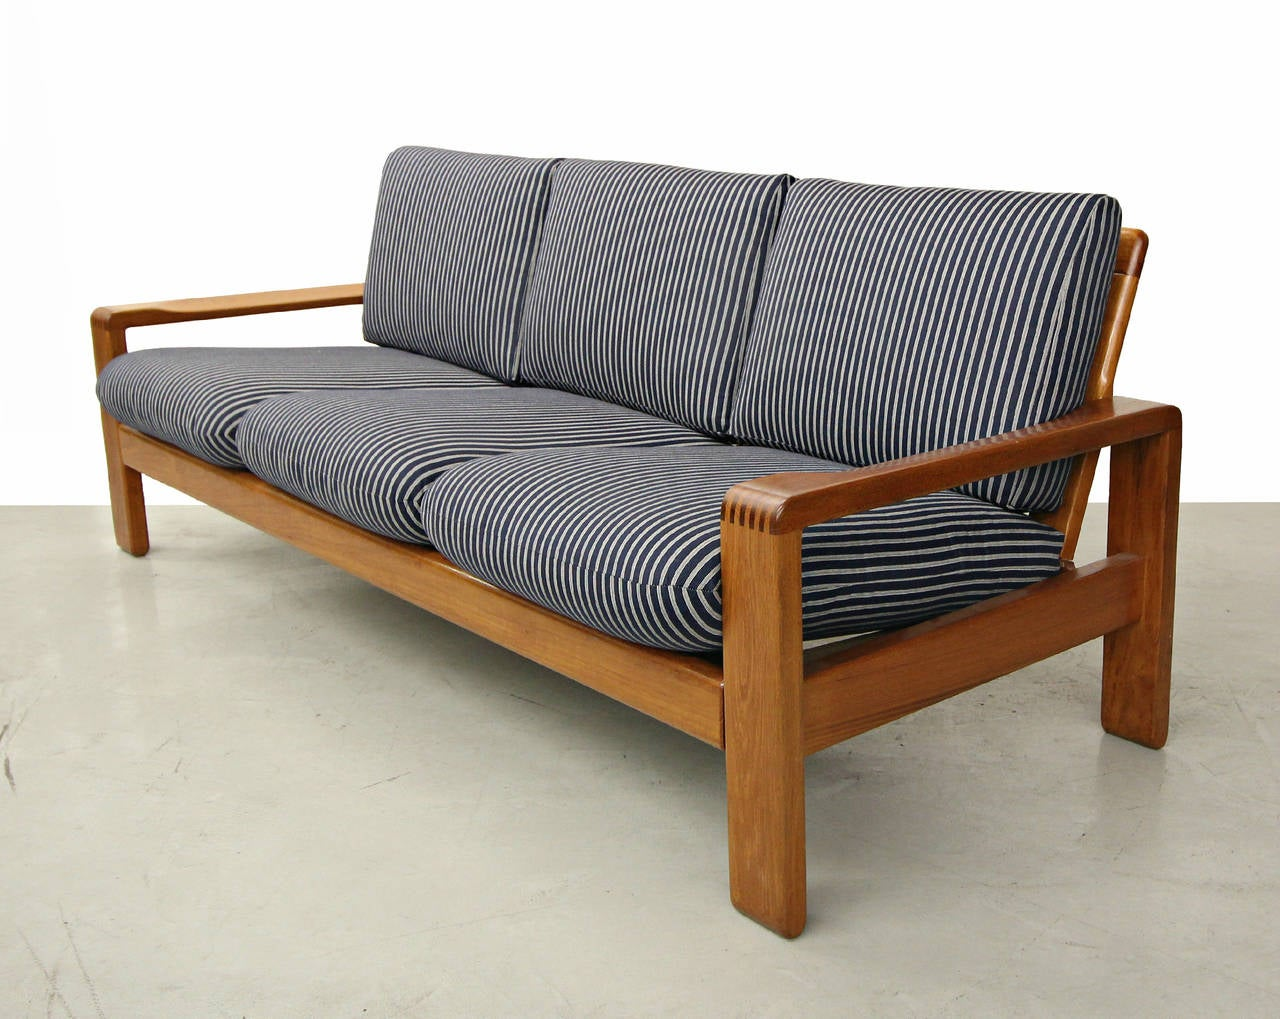 ... Danish Teak Slat-Back Sofa by HW Klein for Bramin Mobler at 1stdibs